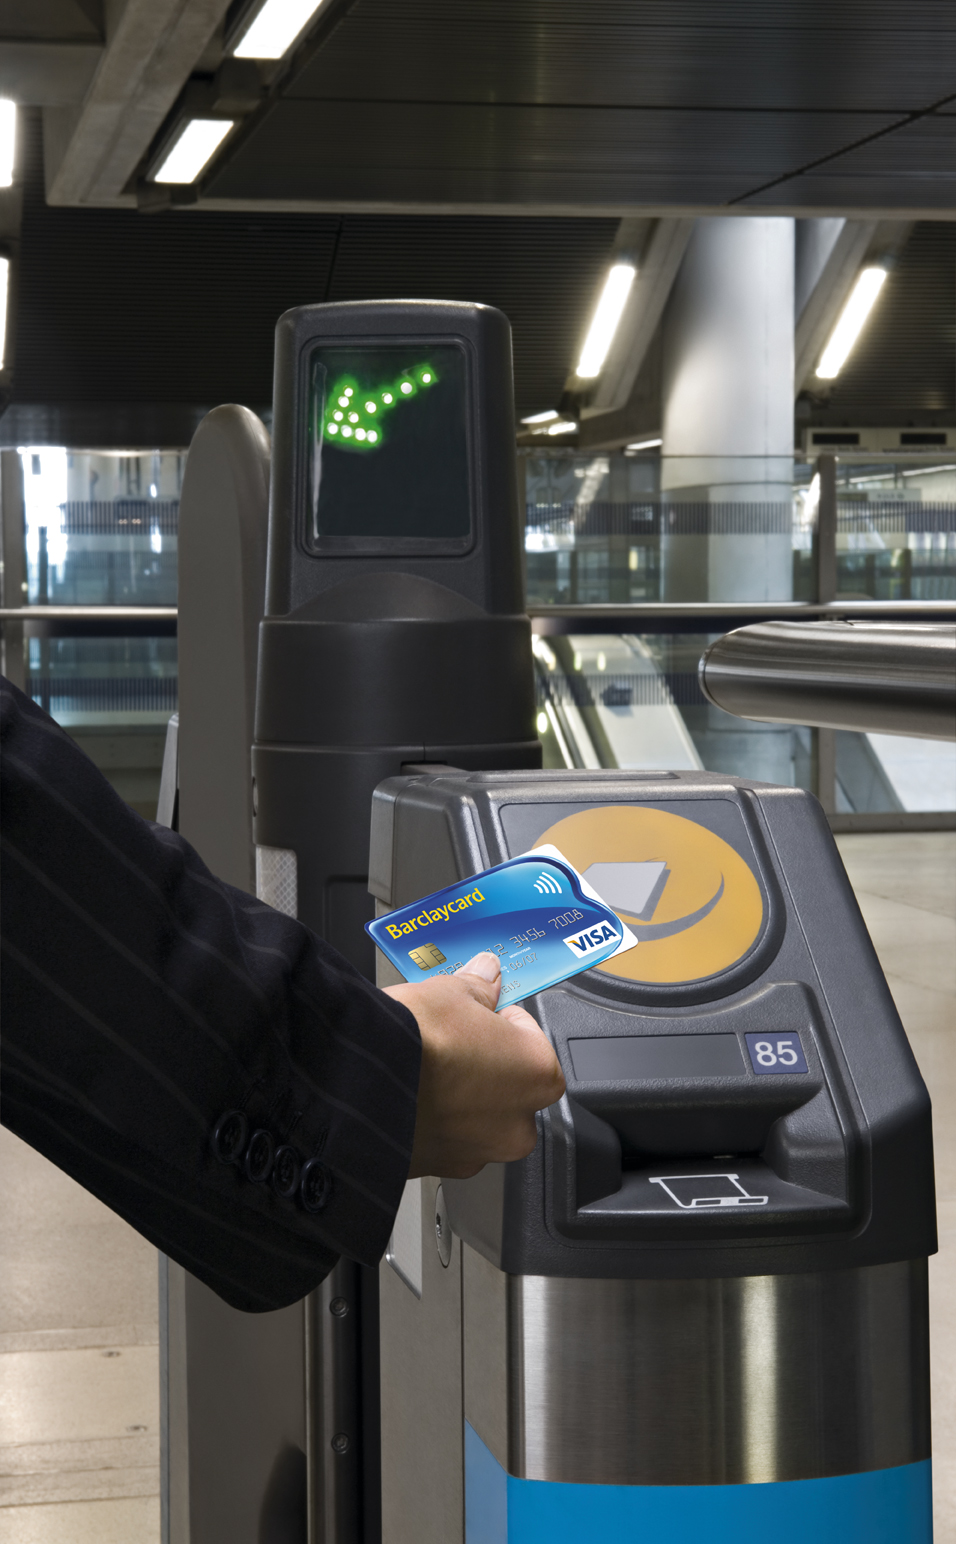 visa-touch-to-pay-3